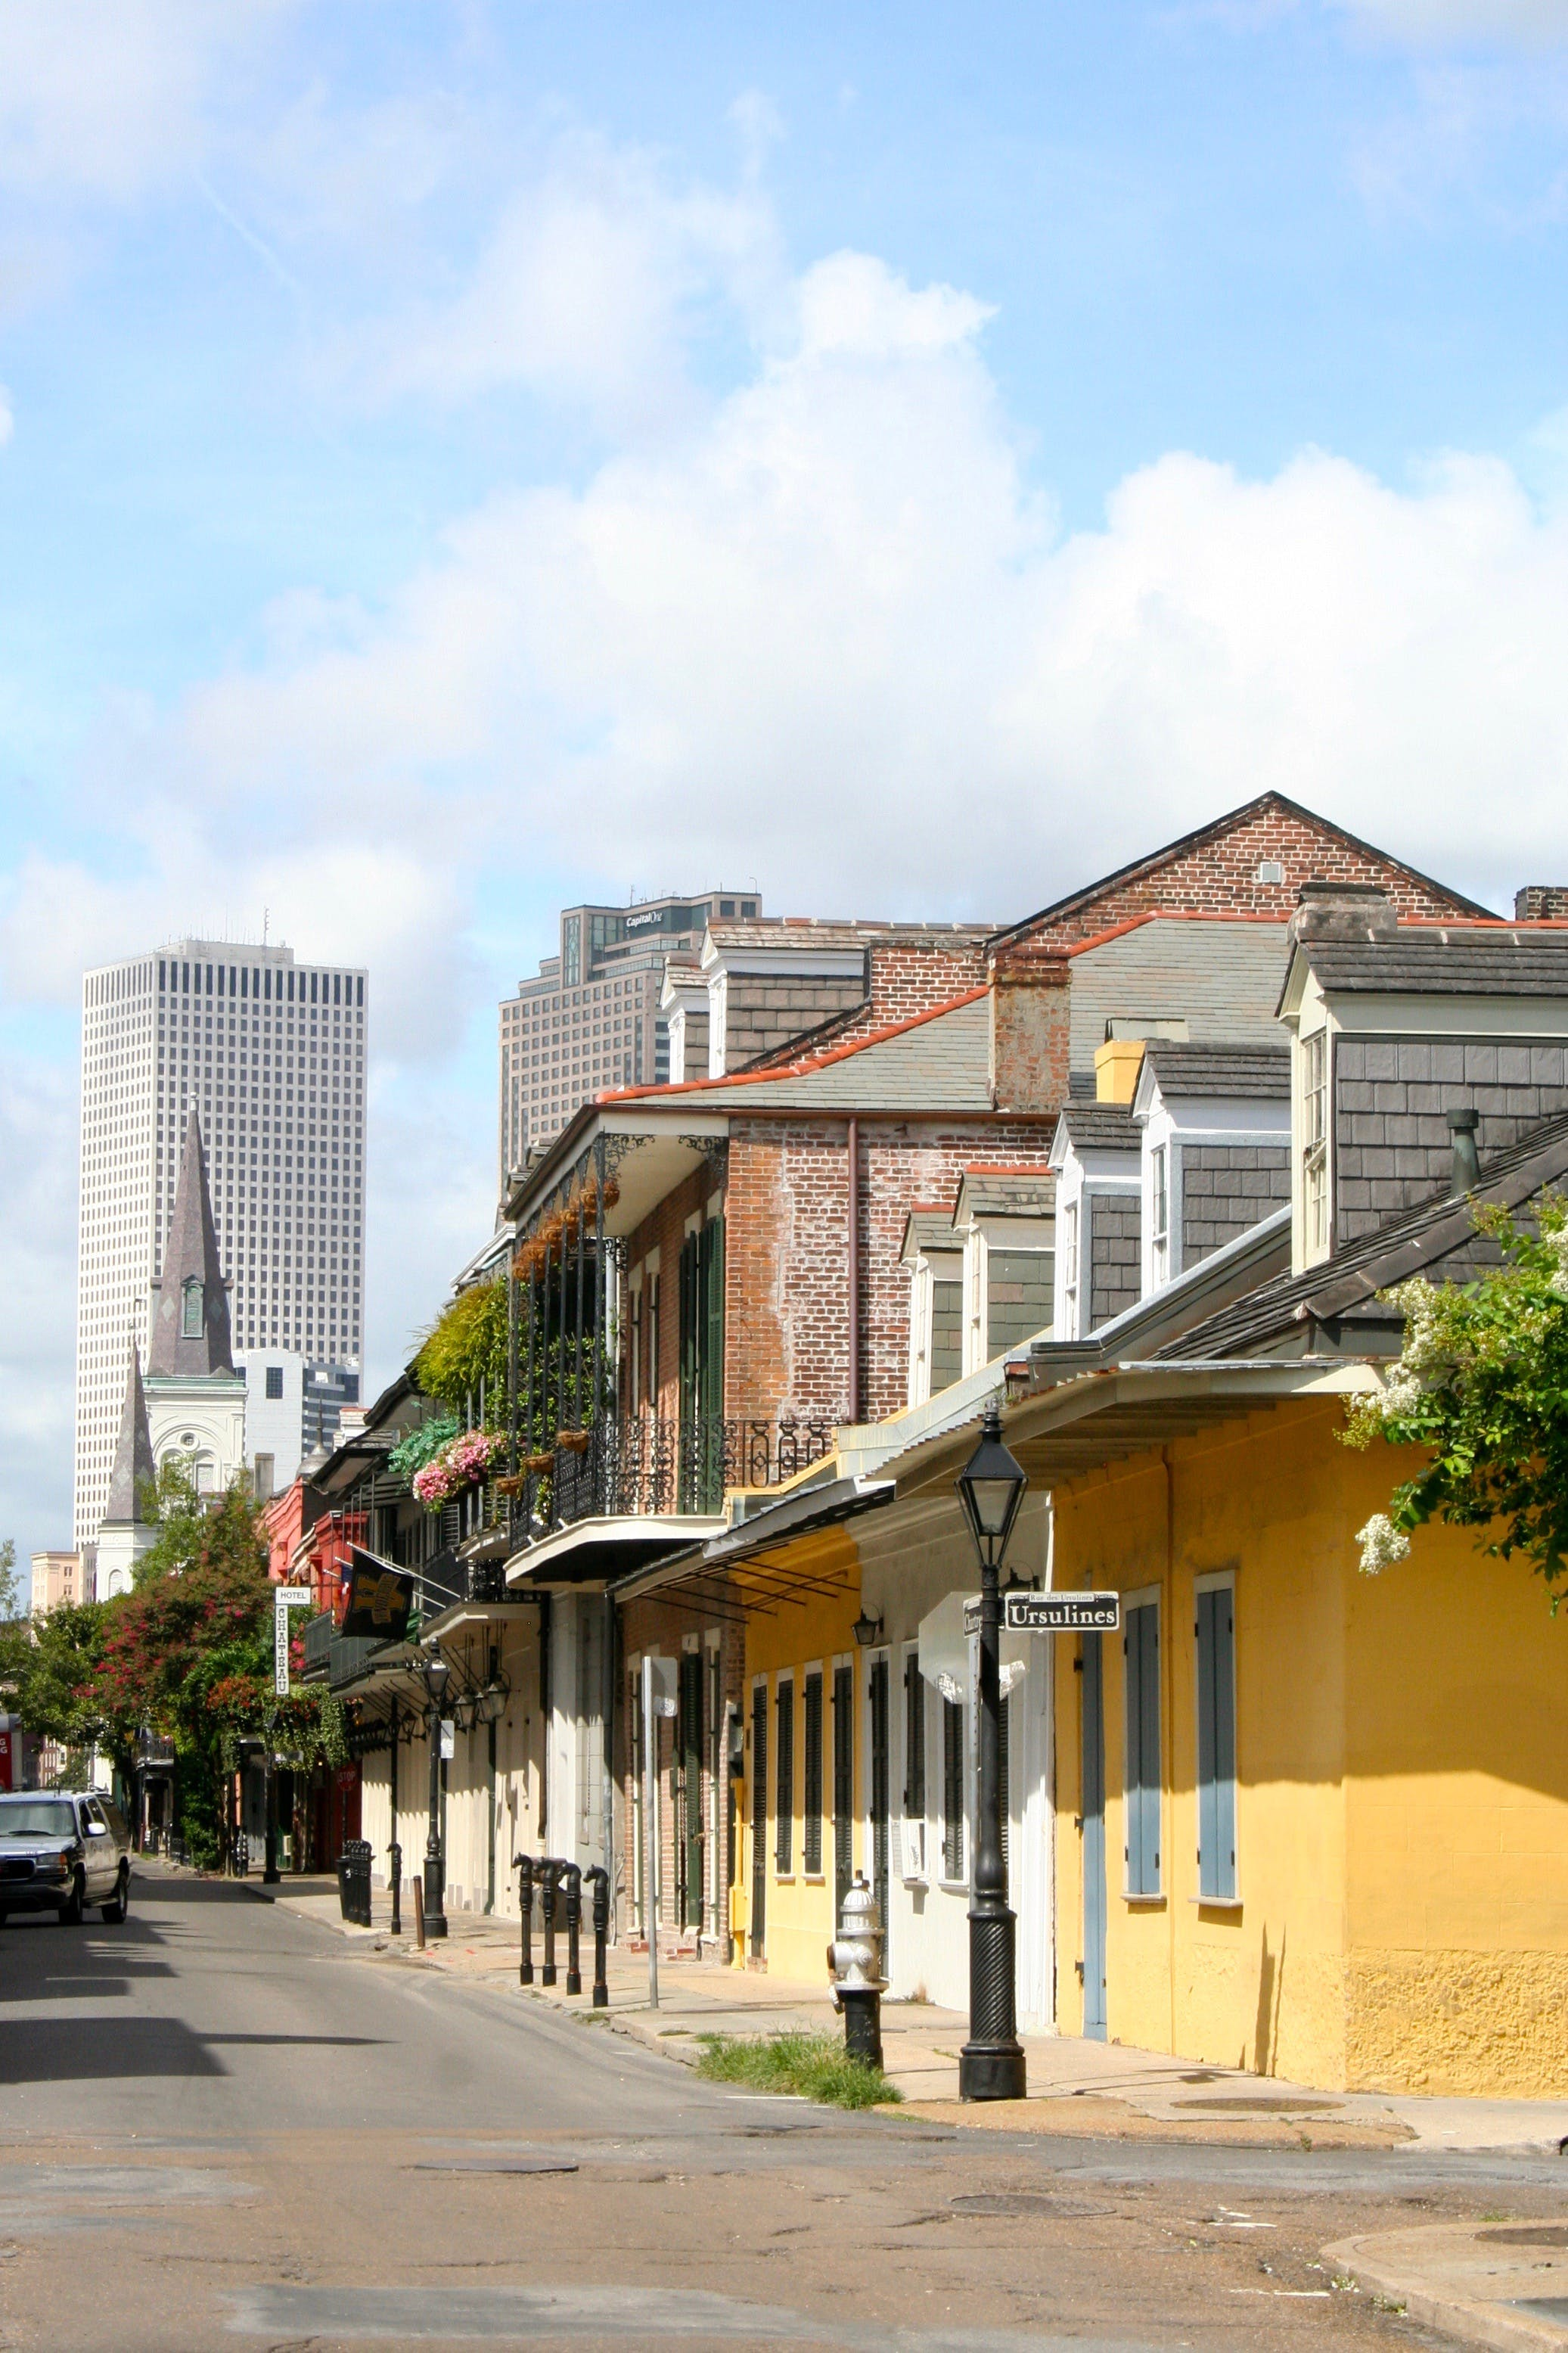 Free stock photo of French Quarter, new orleans, st louis cathedral